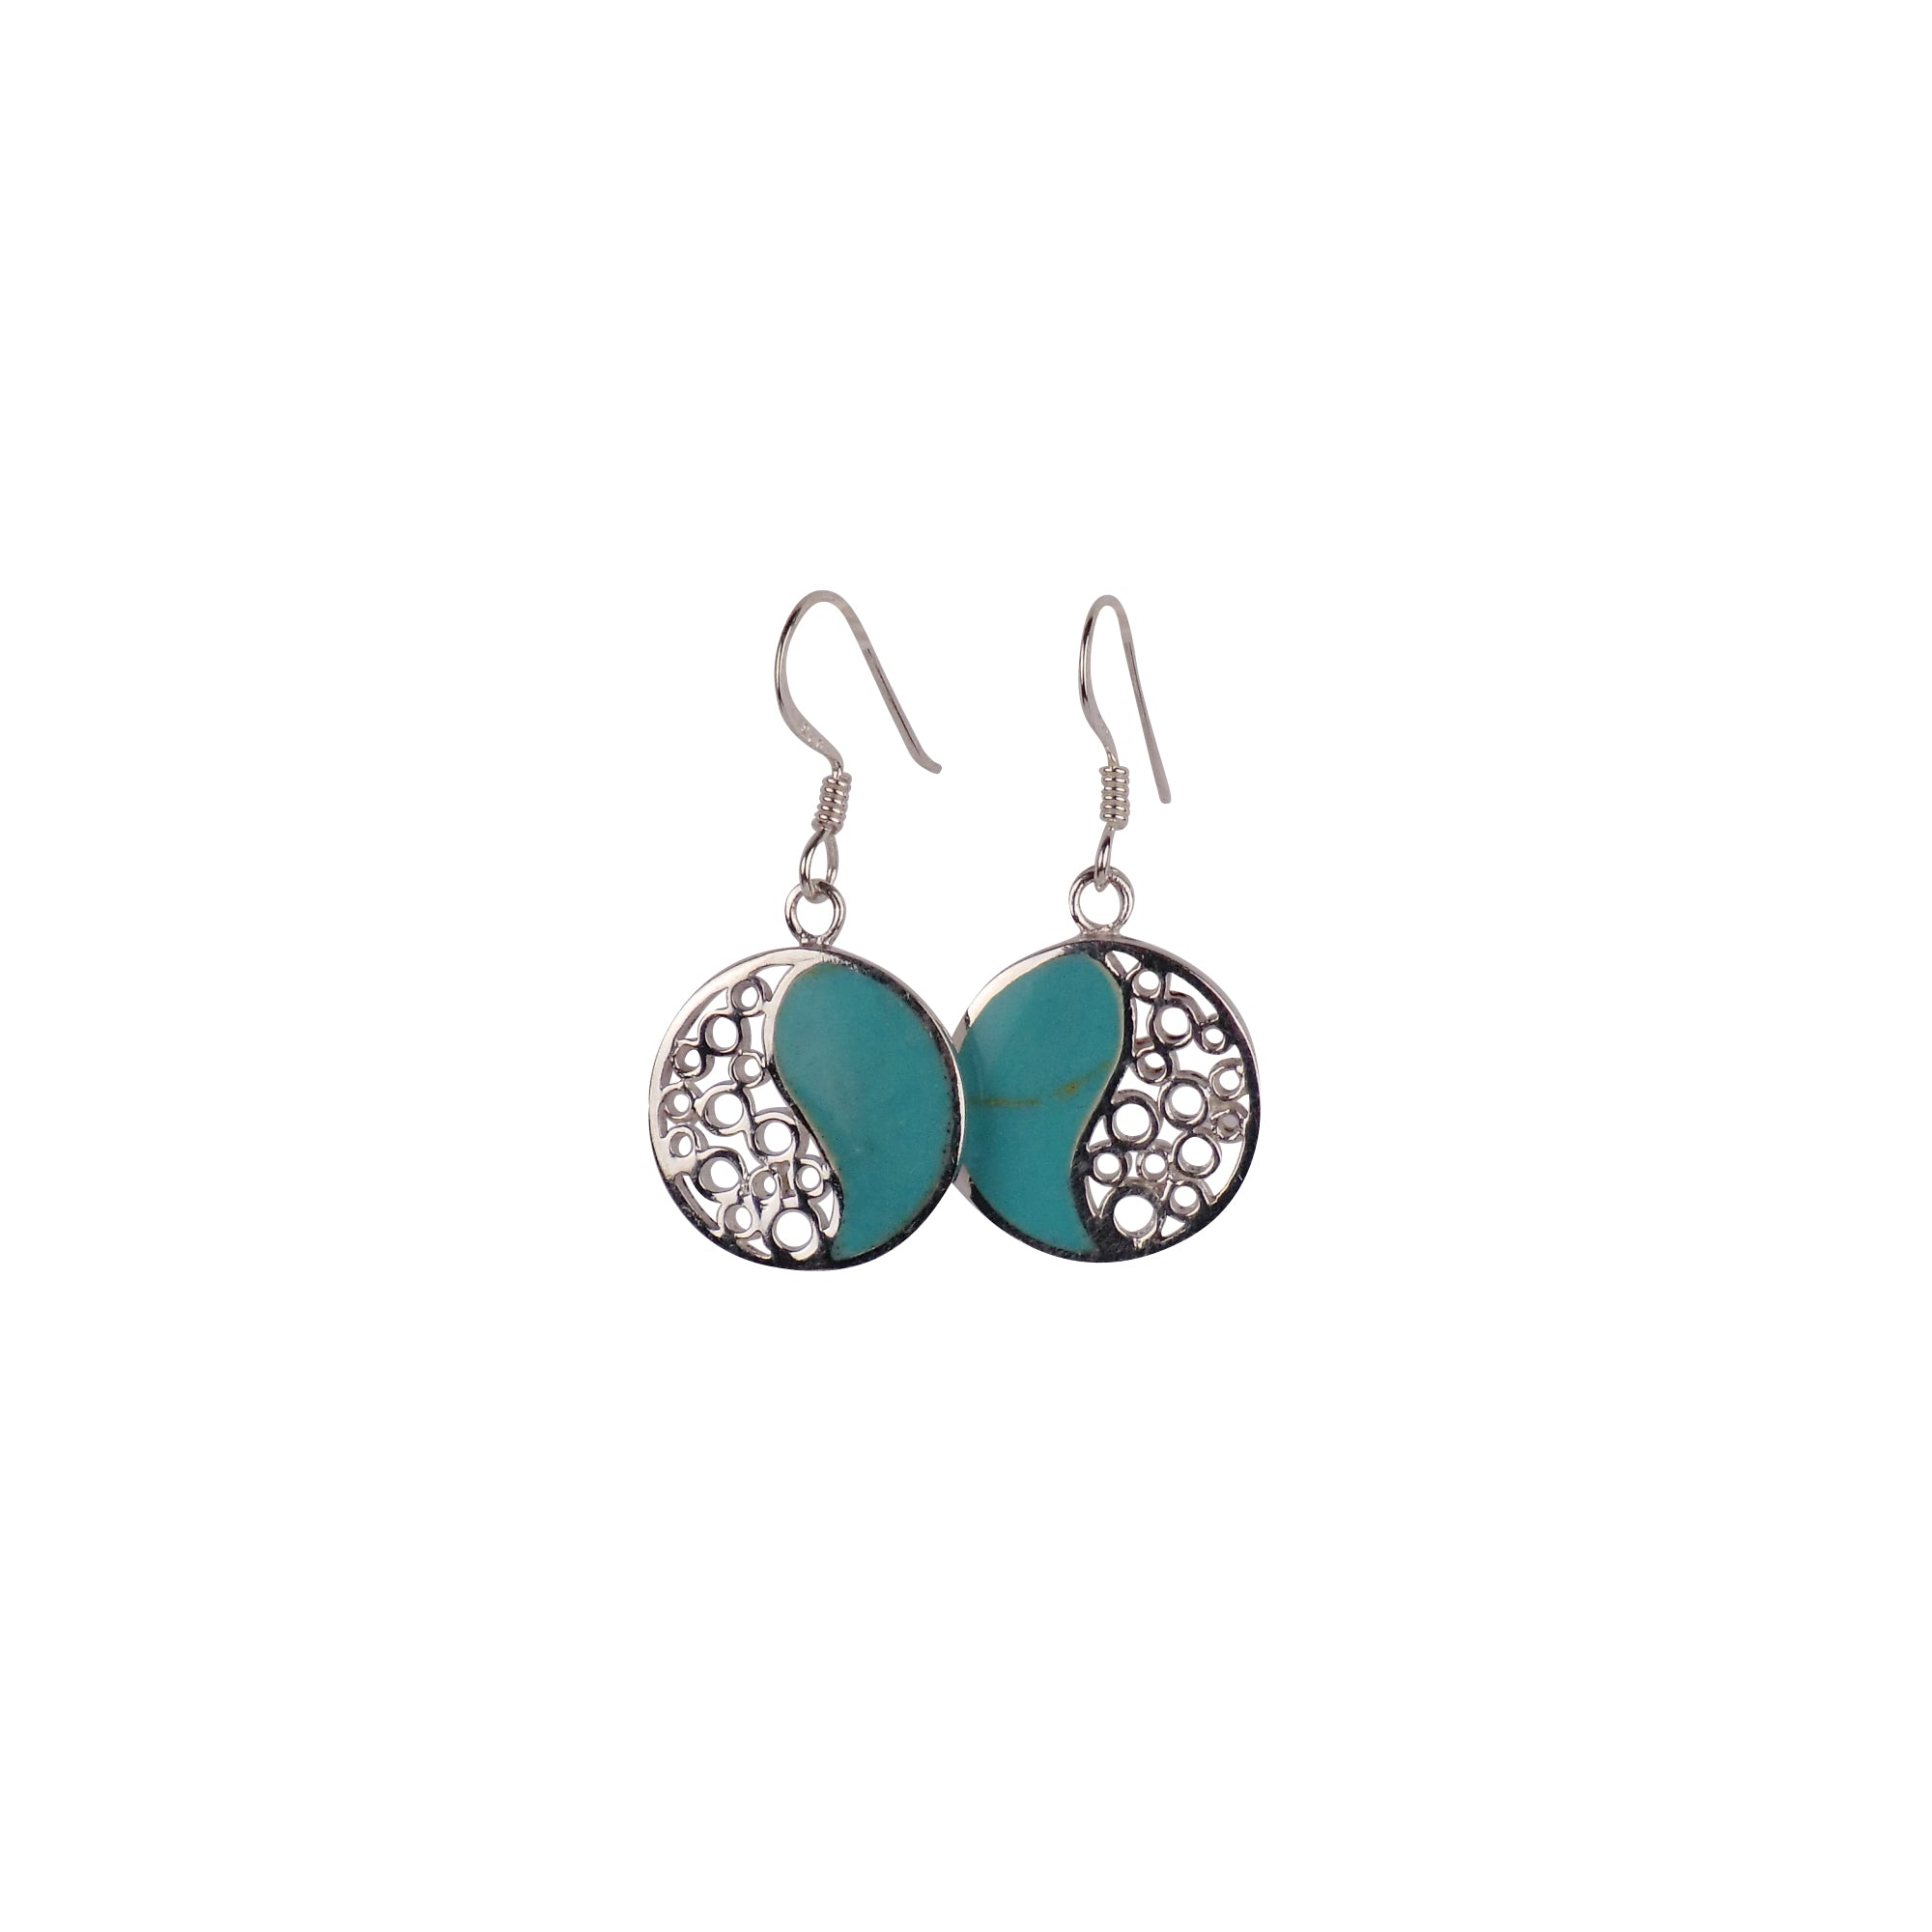 Round Earrings in Ying Yang Shape - Matico